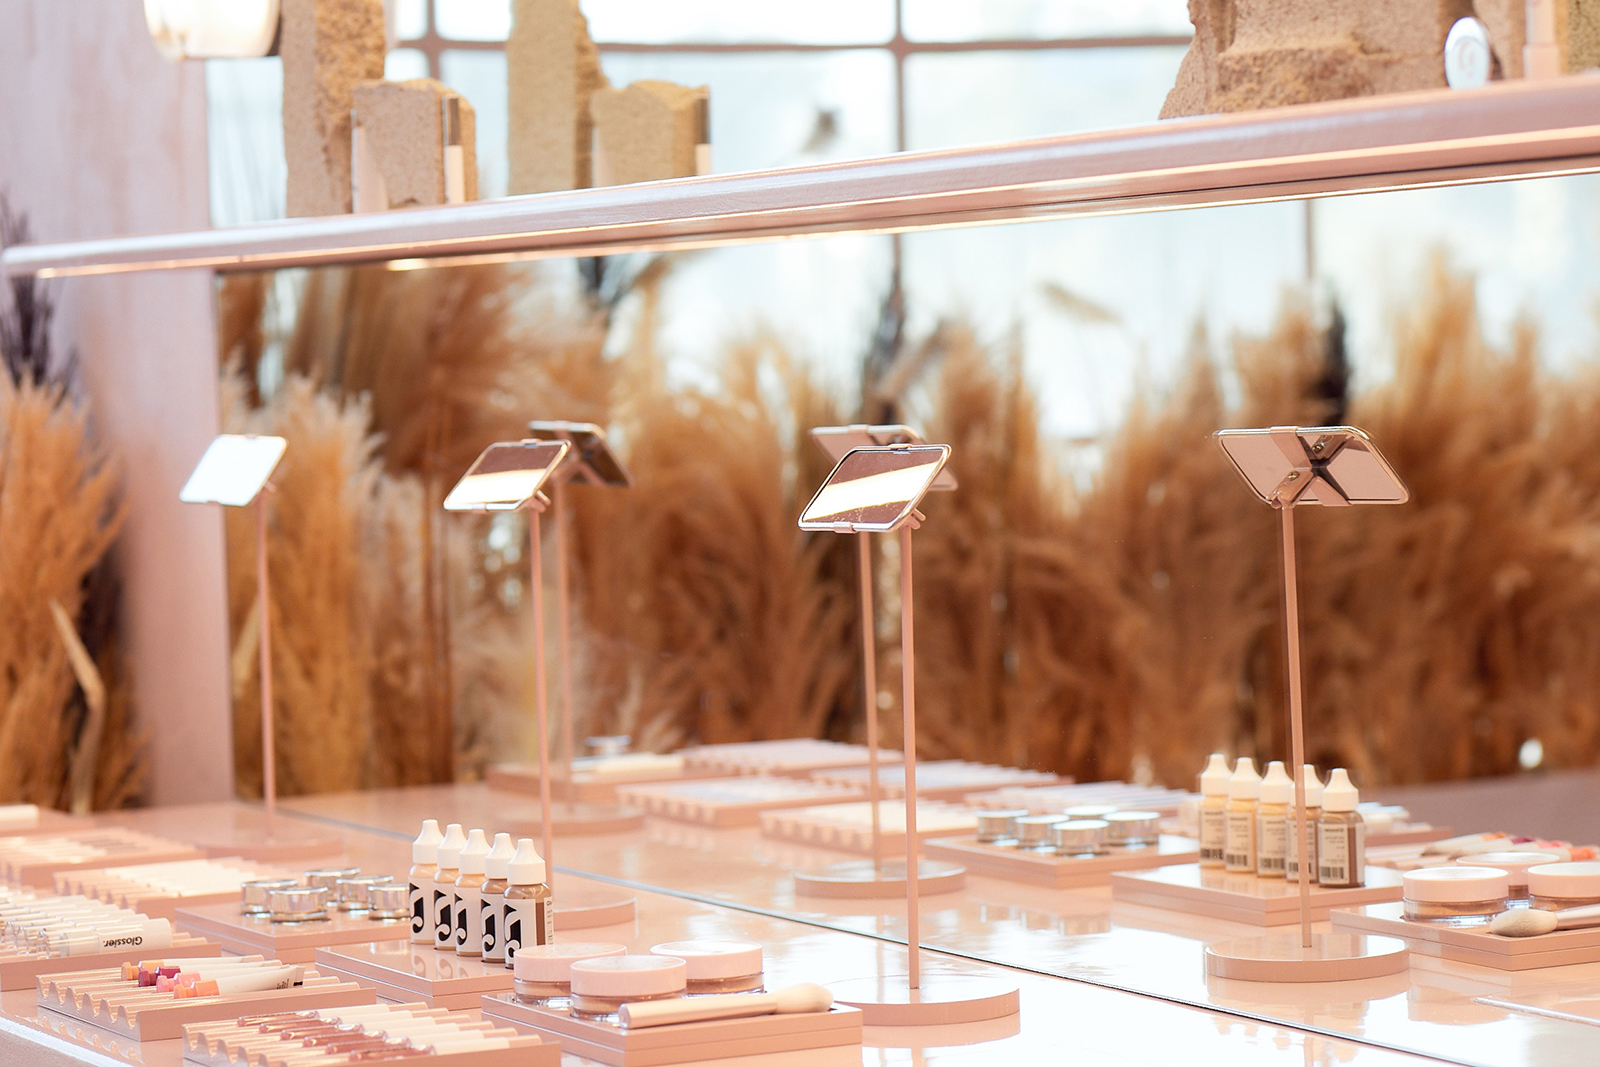 Backstage | Glossier opens first beauty boutique in L.A.